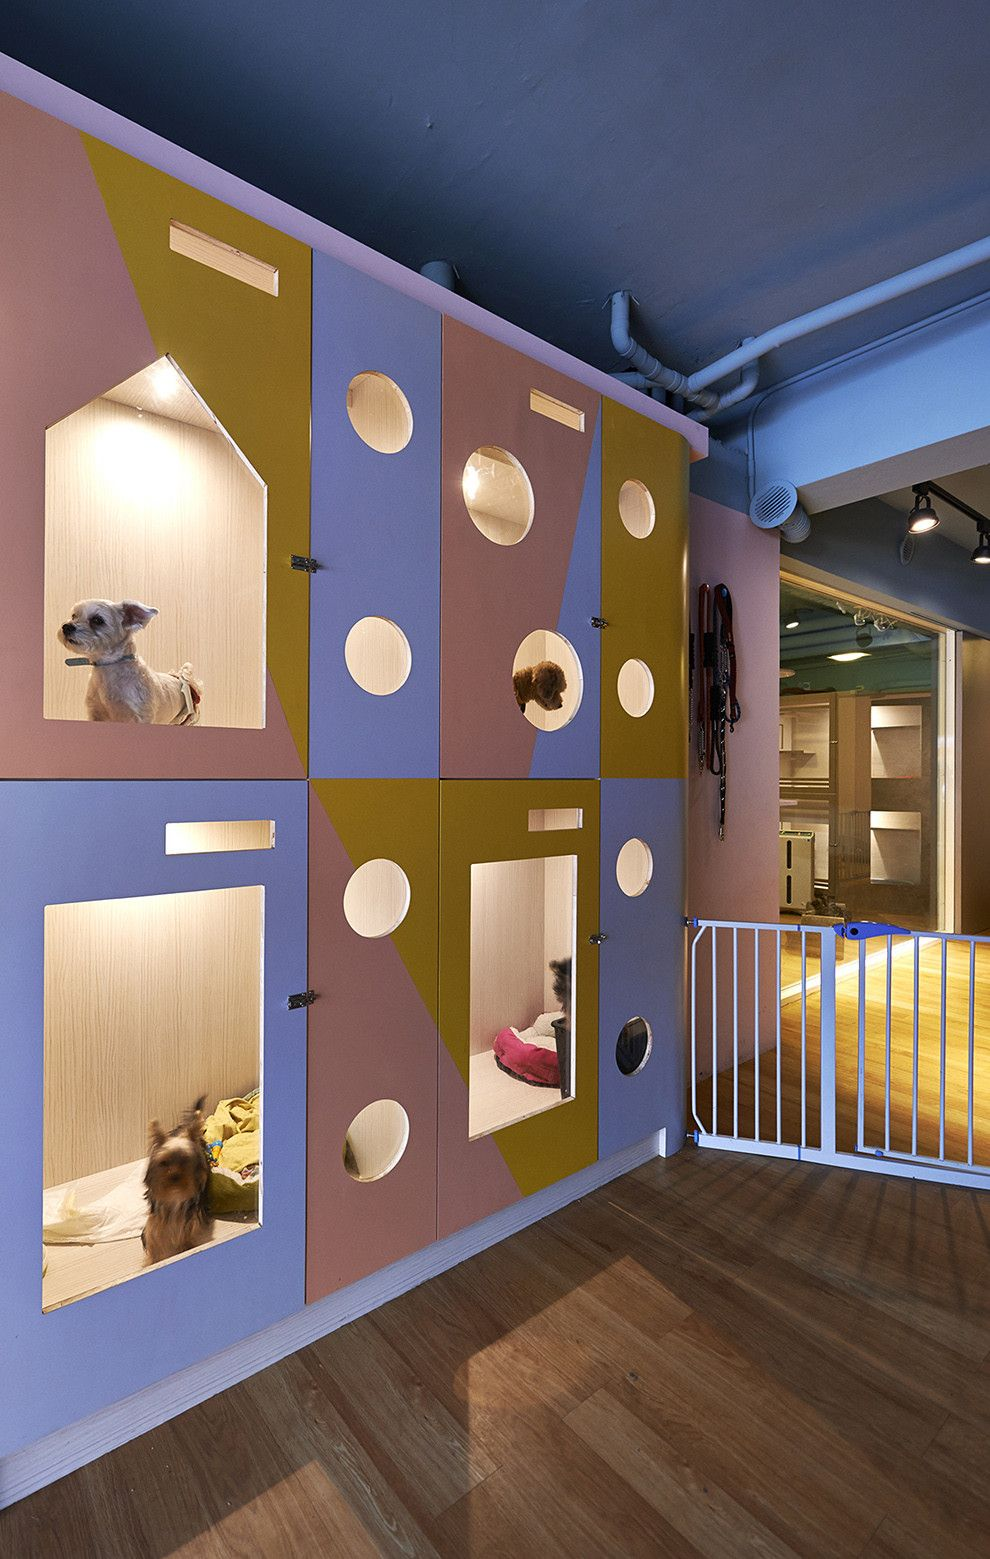 Gallery Of Petaholic Hotel Sms Design 2 Pet Clinic